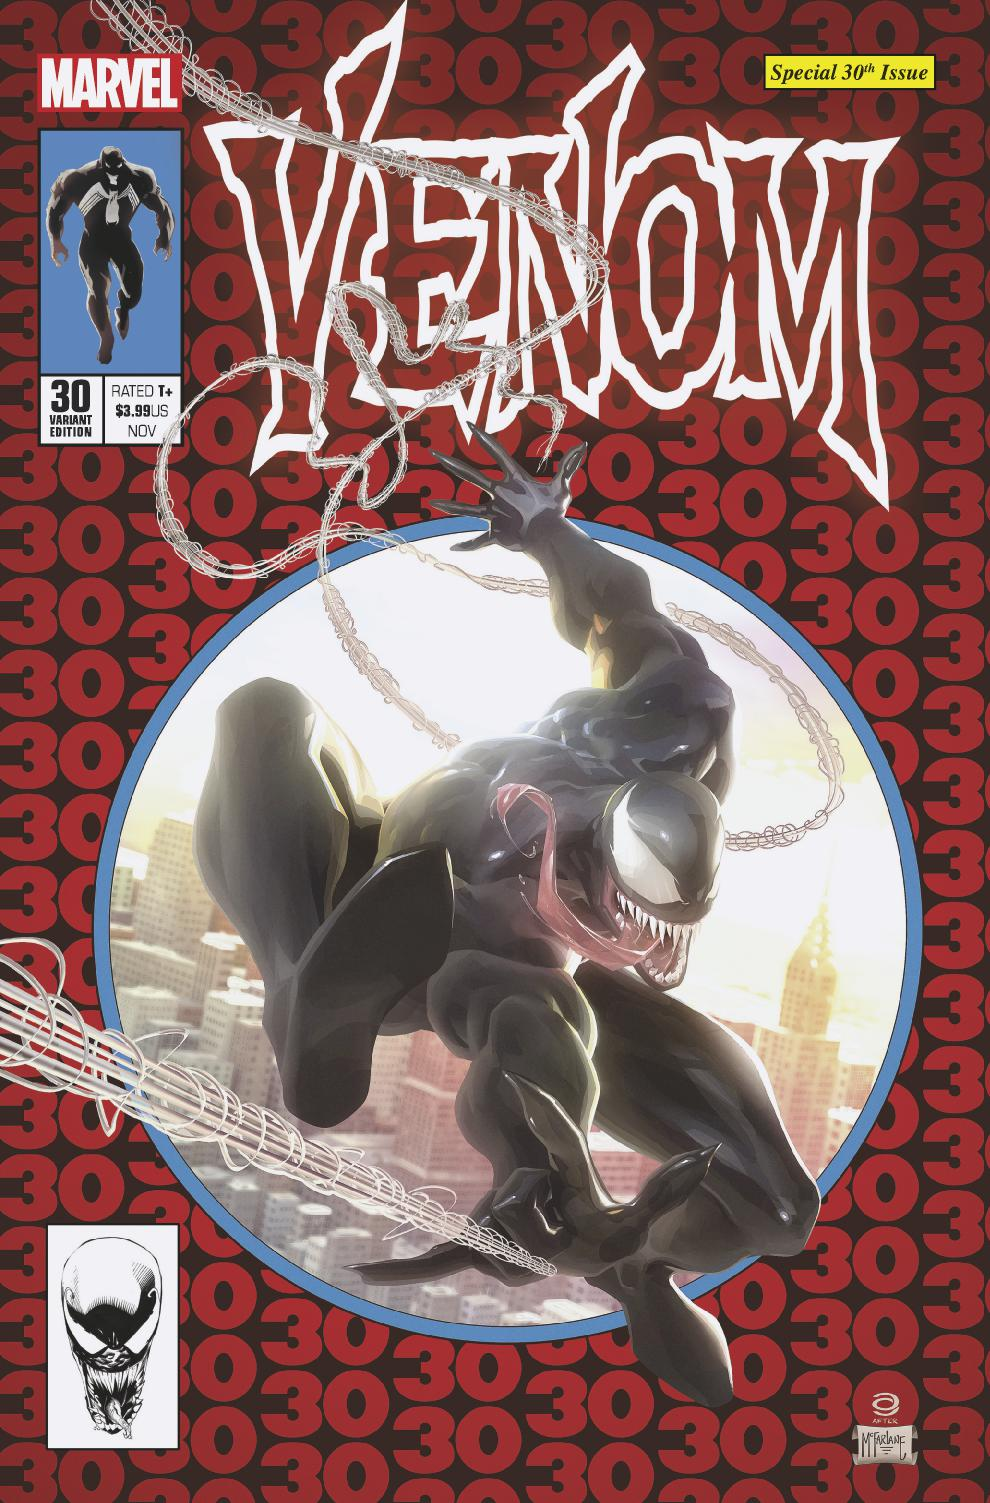 Venom #30 Alex Garner Cover Art